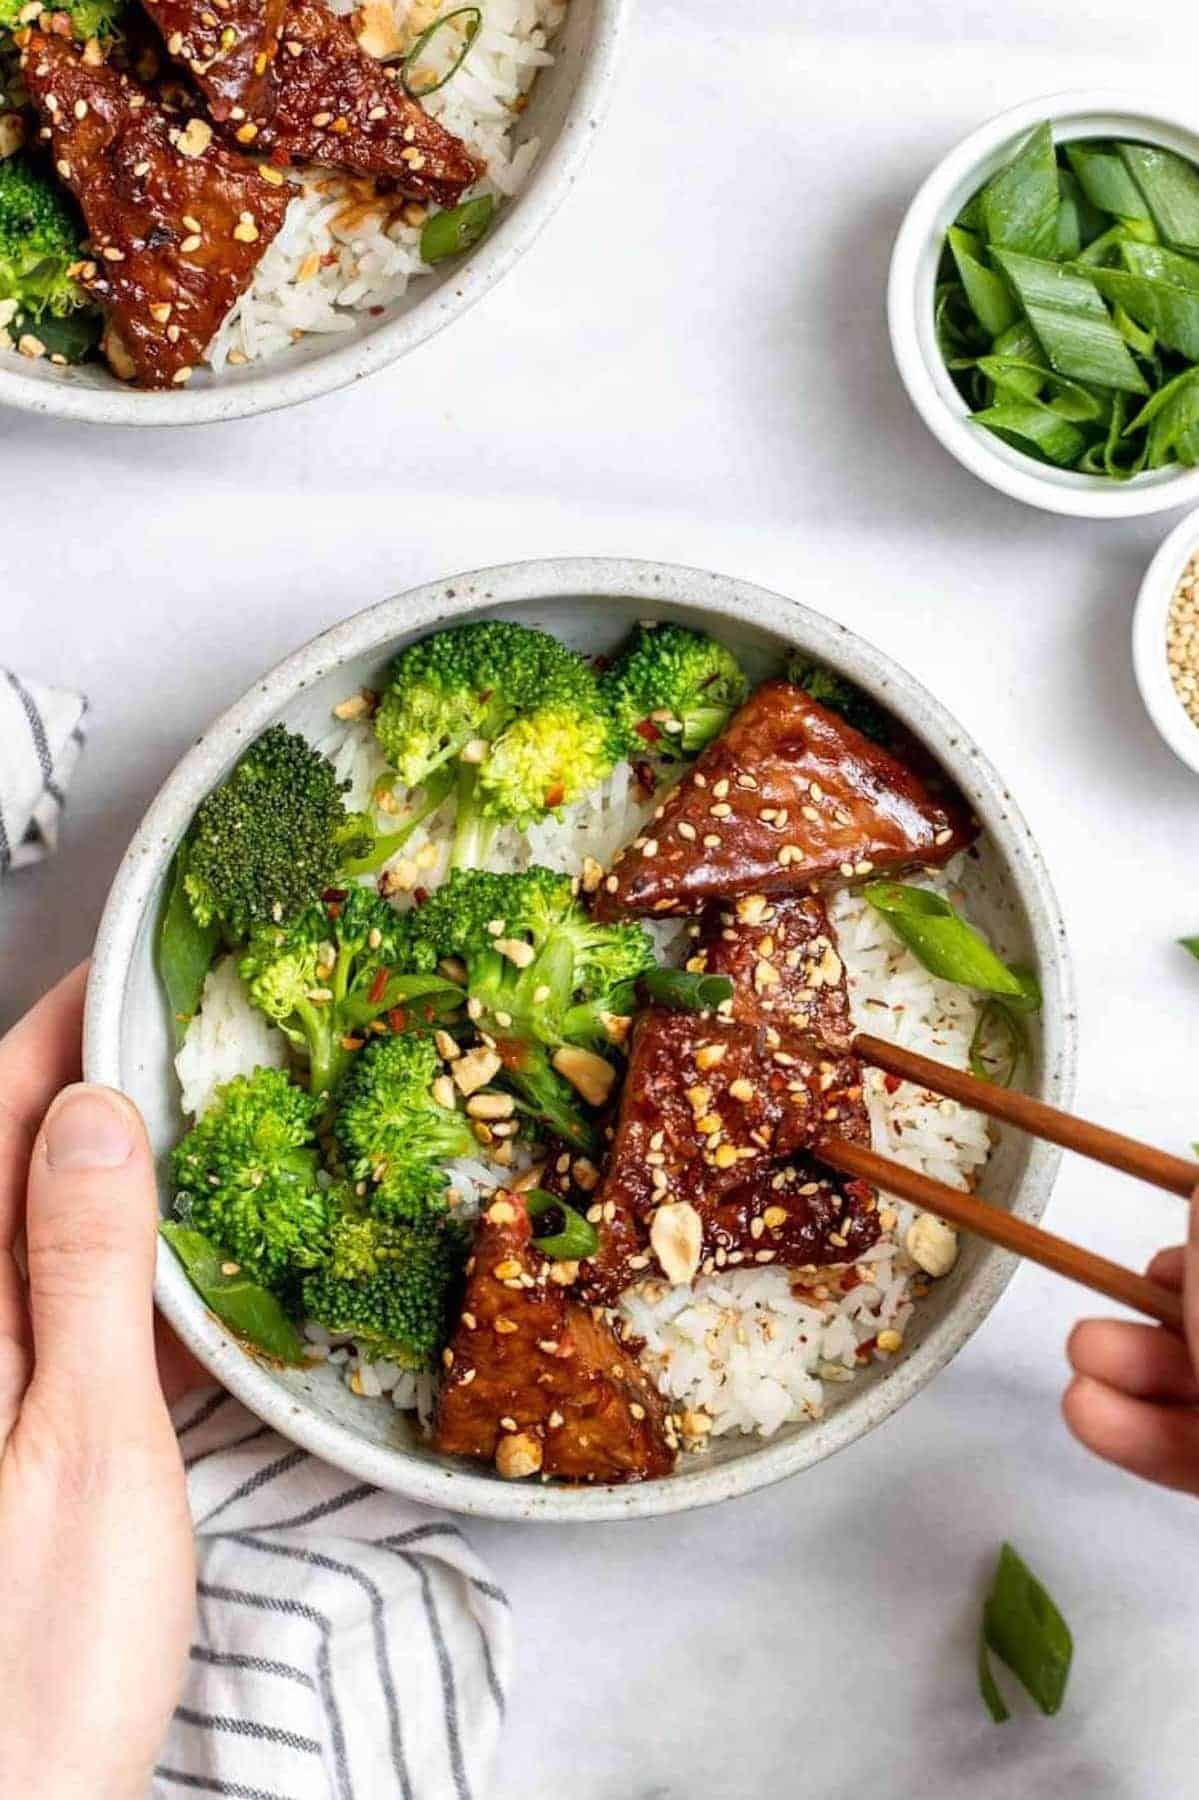 Marinated sesame peanut tempeh with broccoli and rice in a round bowl.